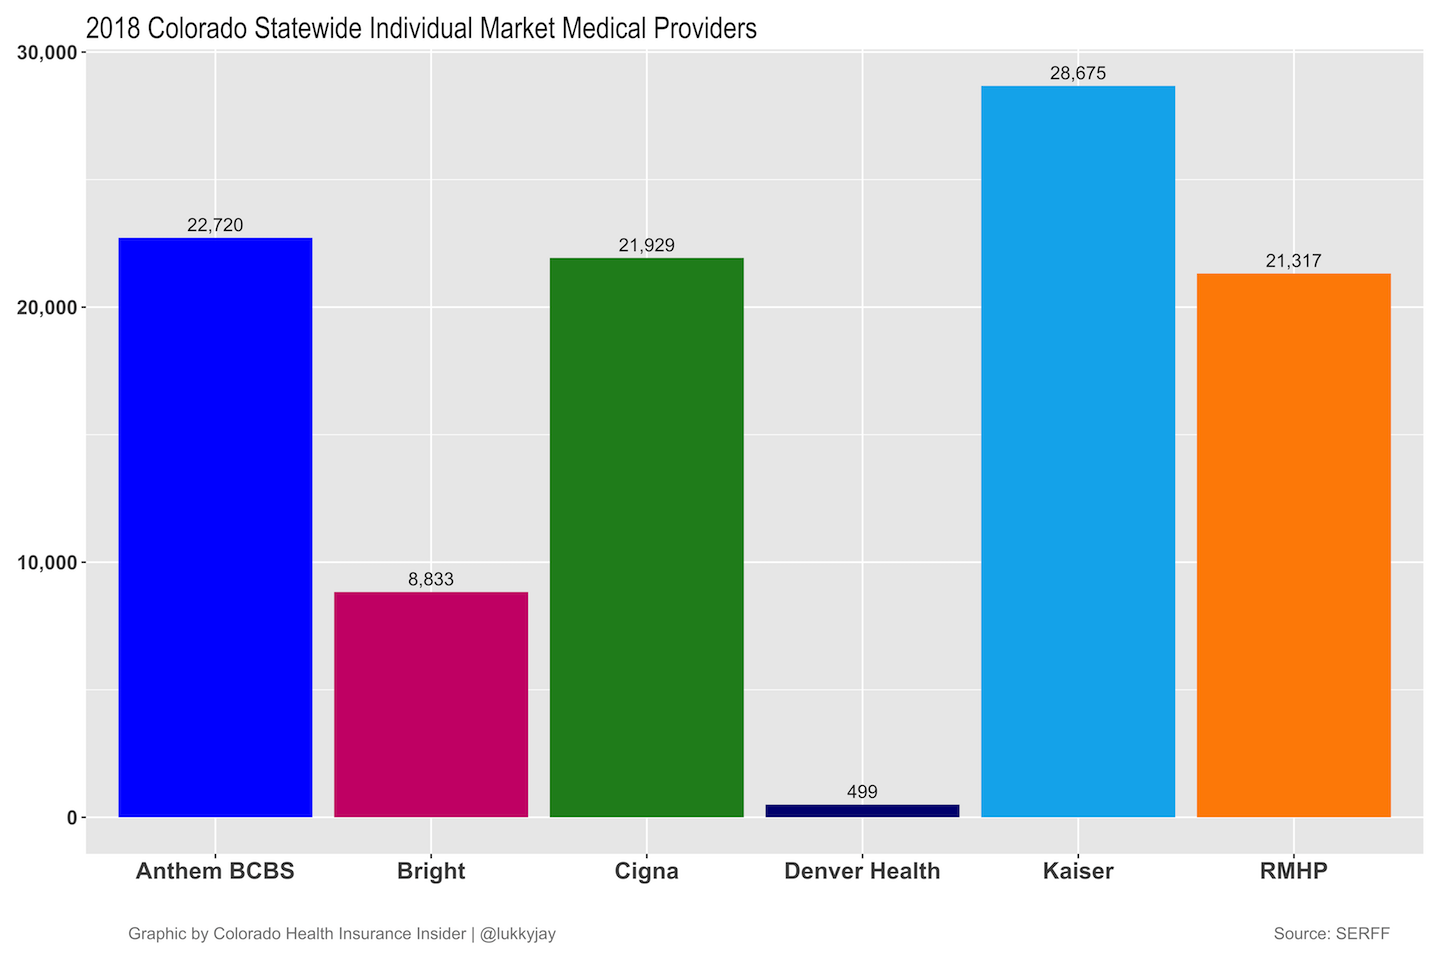 2018 Colorado Individual Market Medical Providers